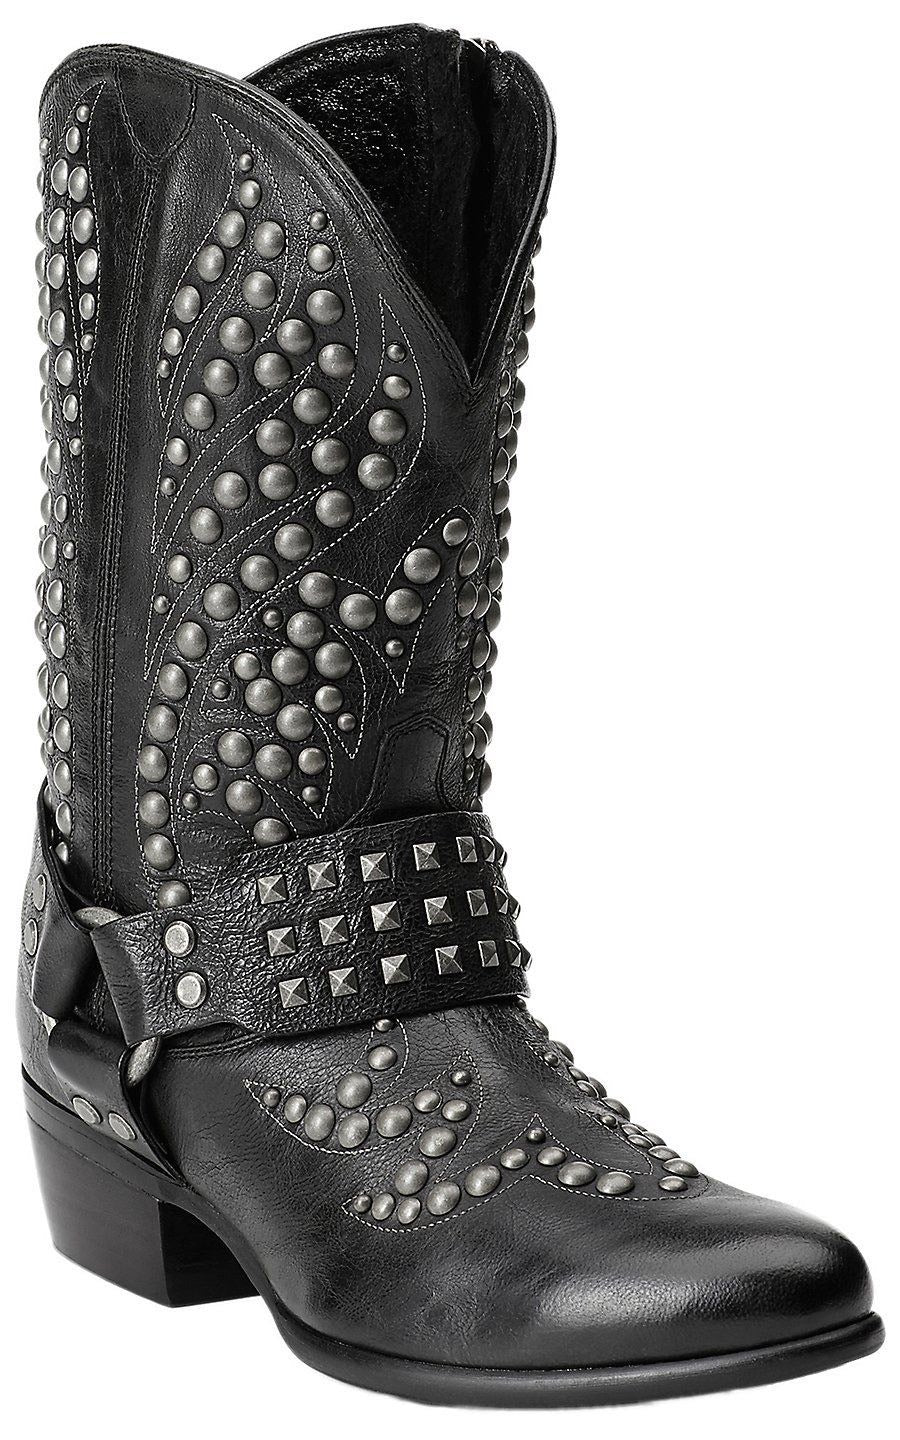 Women's Ariat Black Studded Western Boots